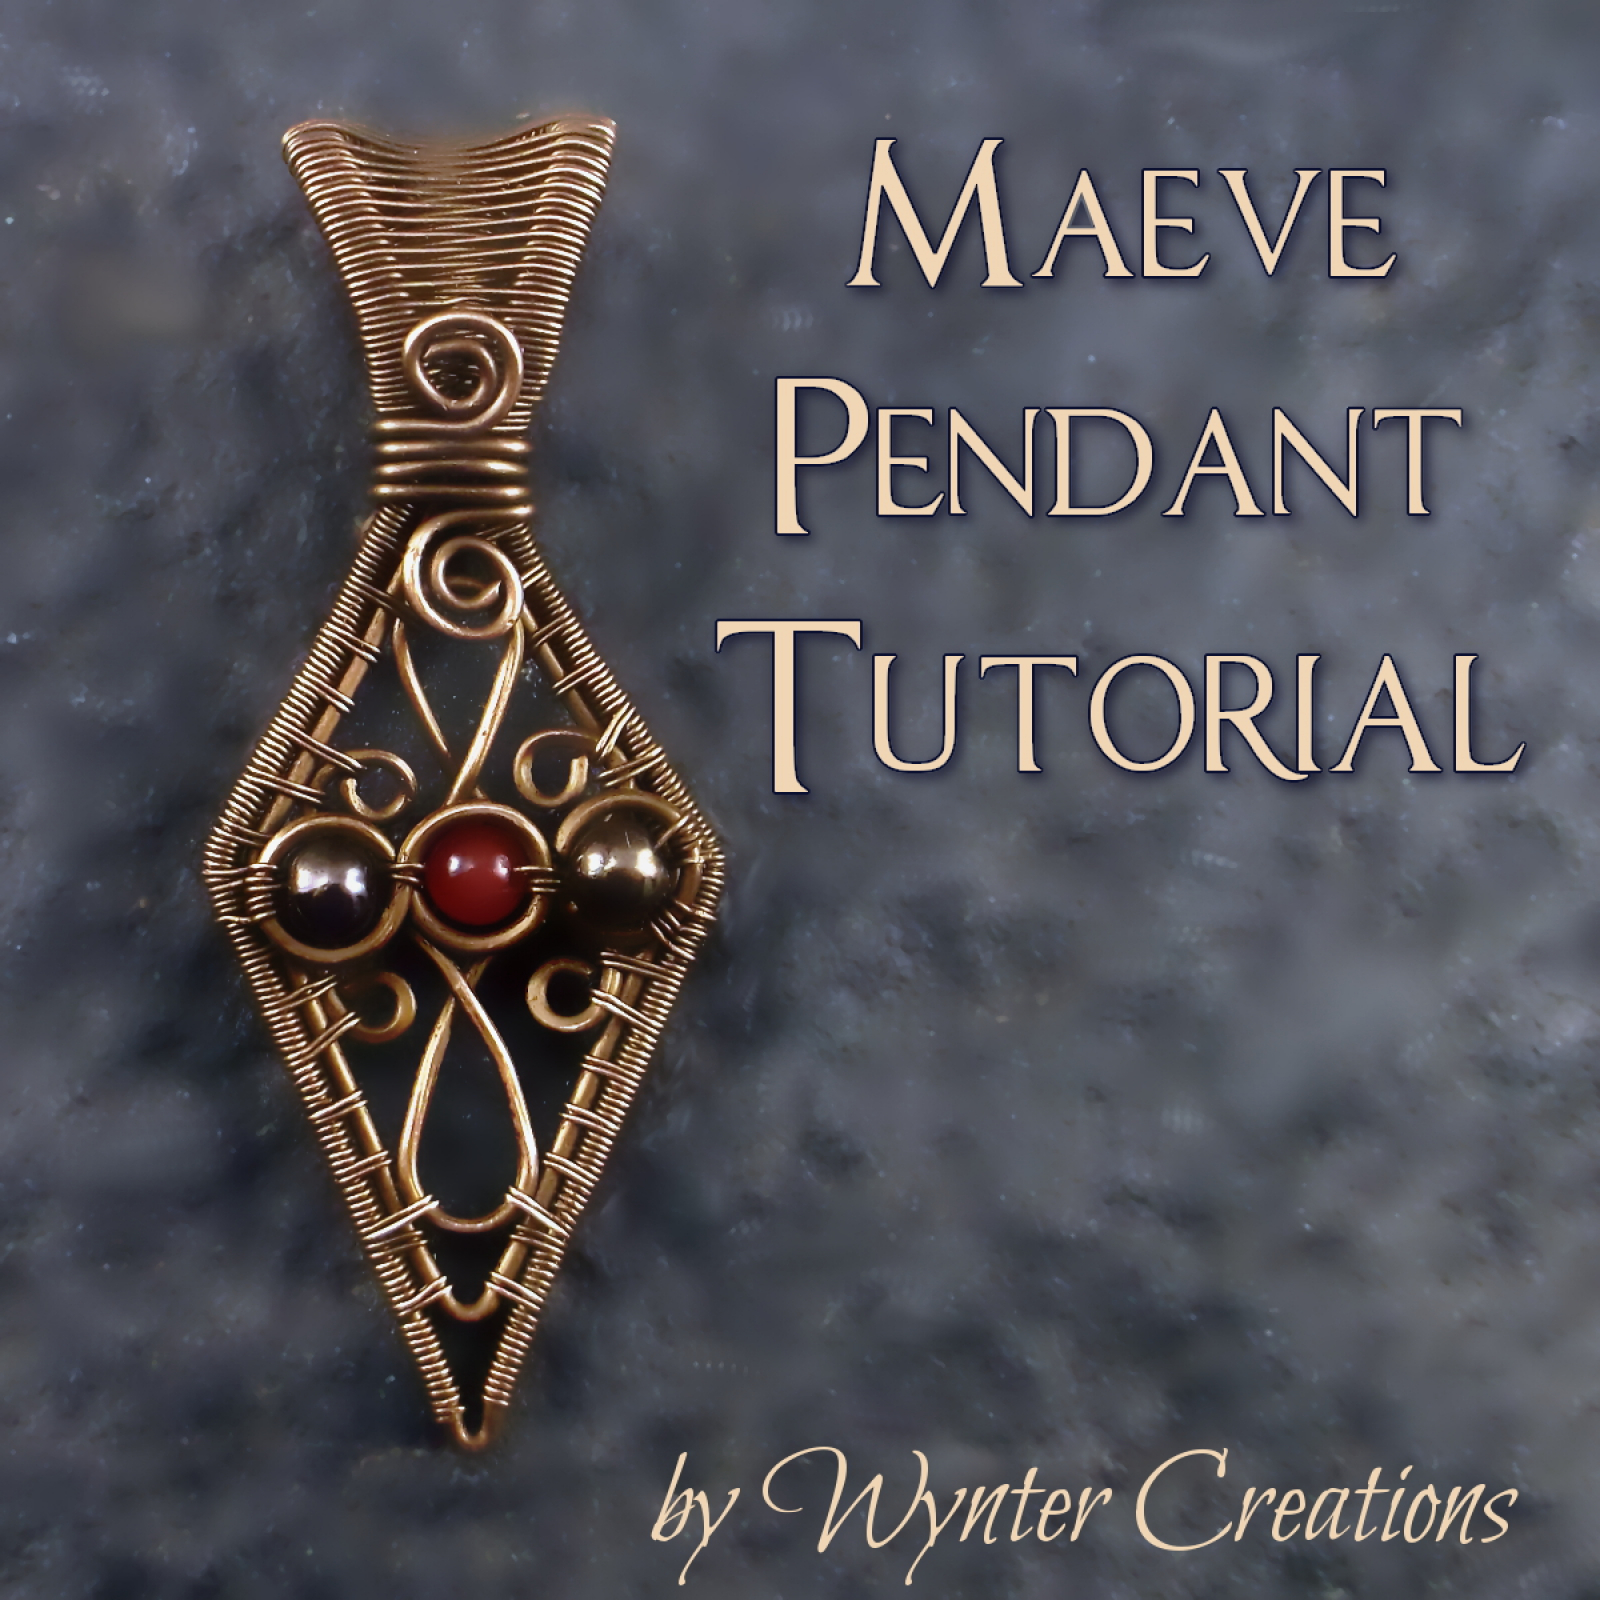 Maeve pendant tutorial wyntercreations wire wrapped pendant tutorial aloadofball Image collections